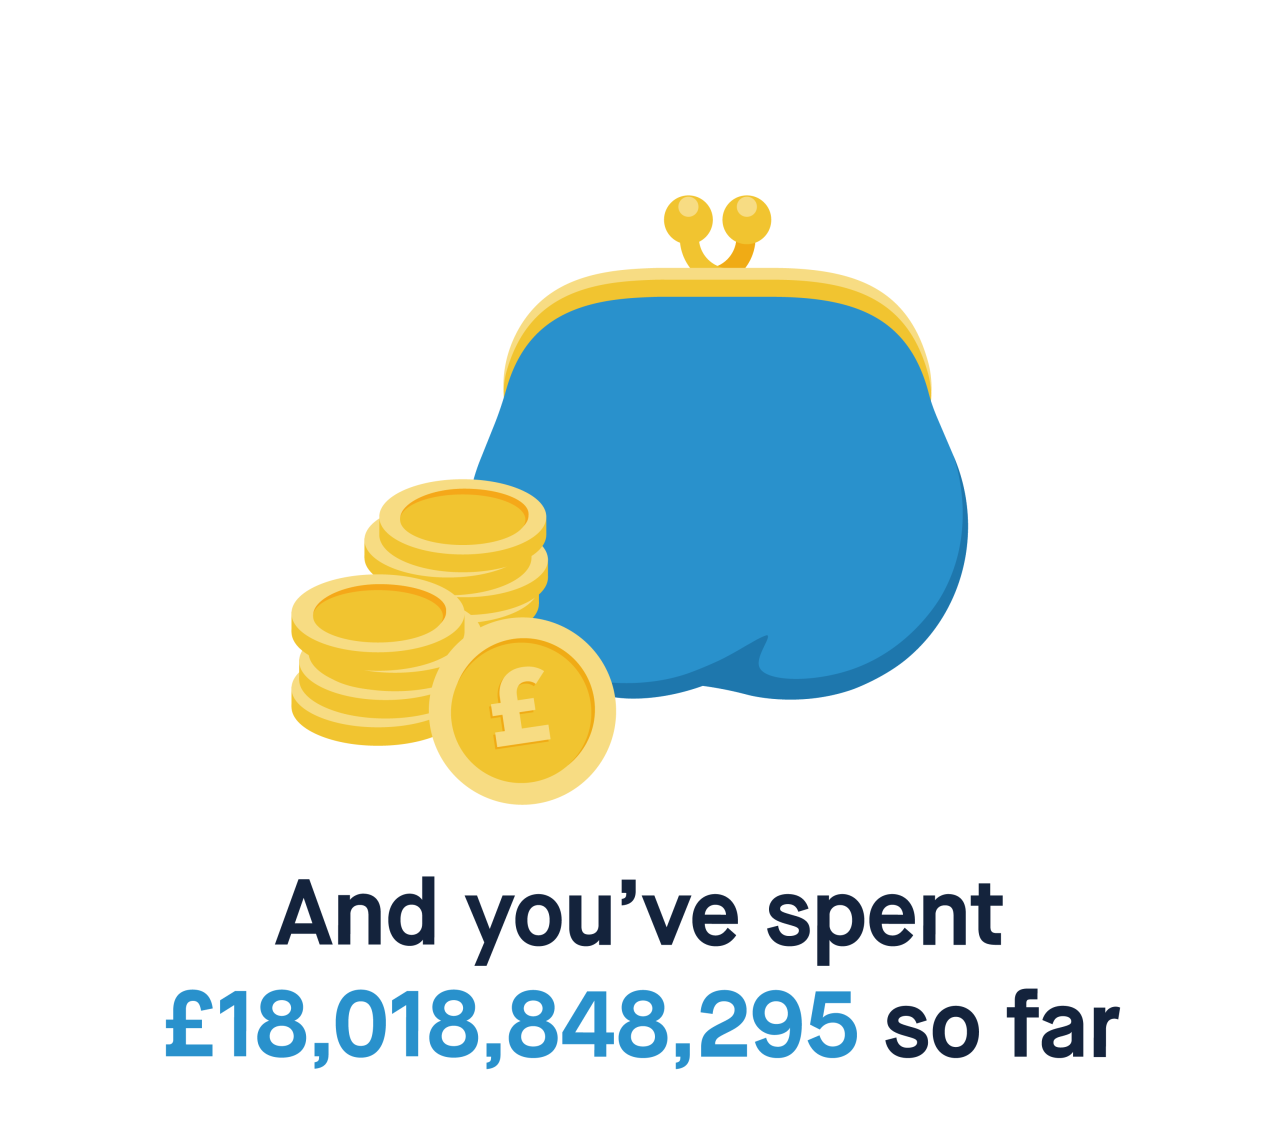 And you've spent £18,018,848,295 so far